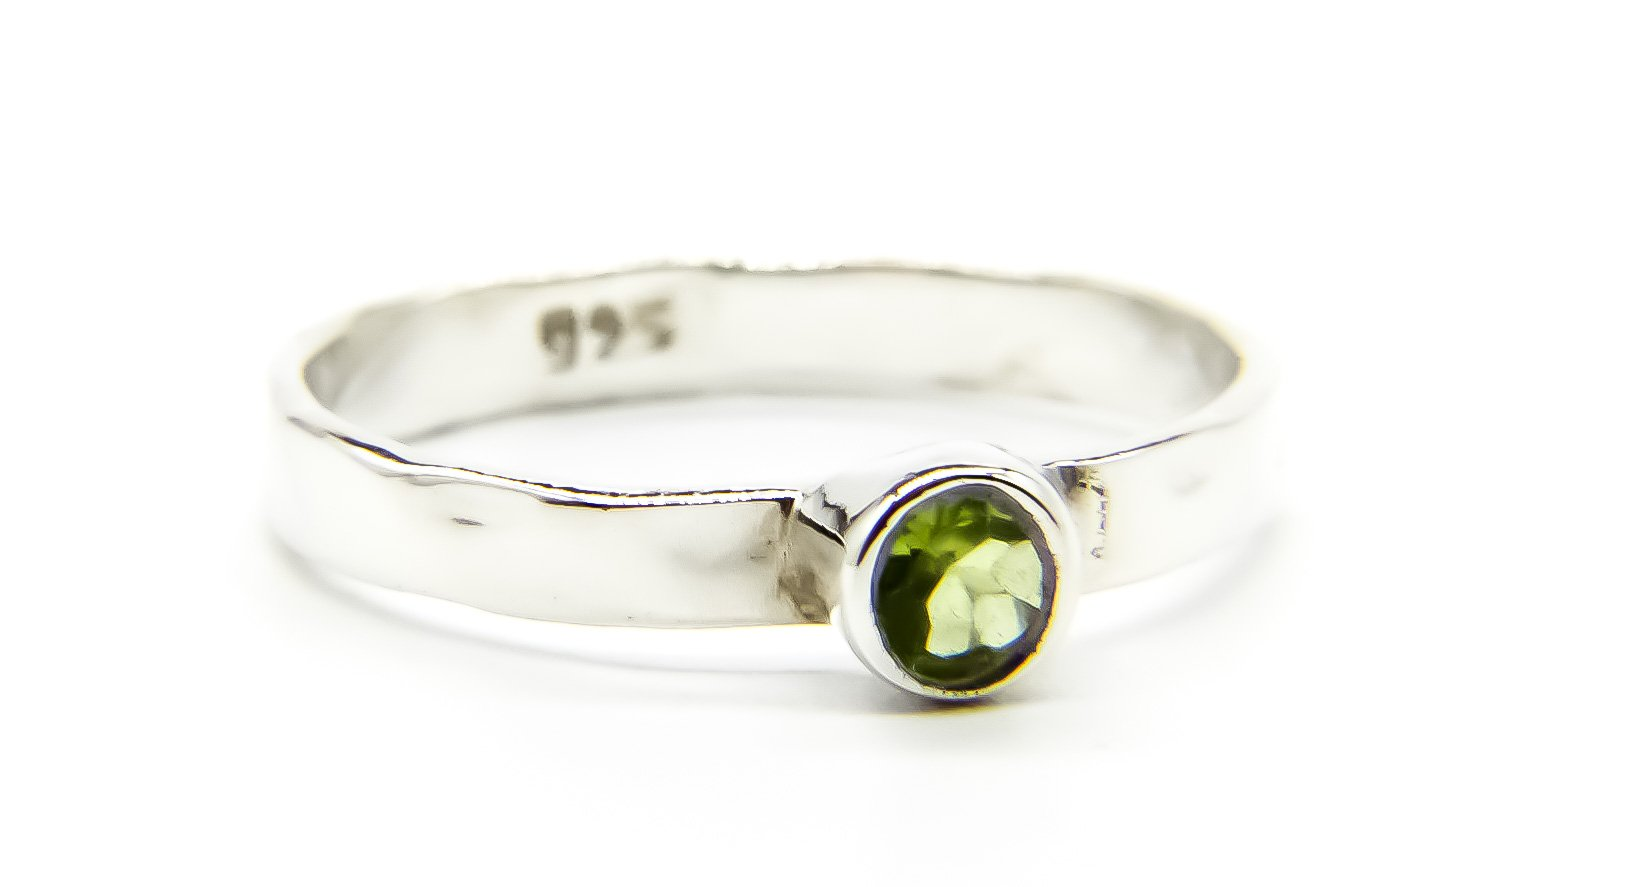 925 Silver Stacking Ring with Peridot Stone - Ben's Beach Jewellery